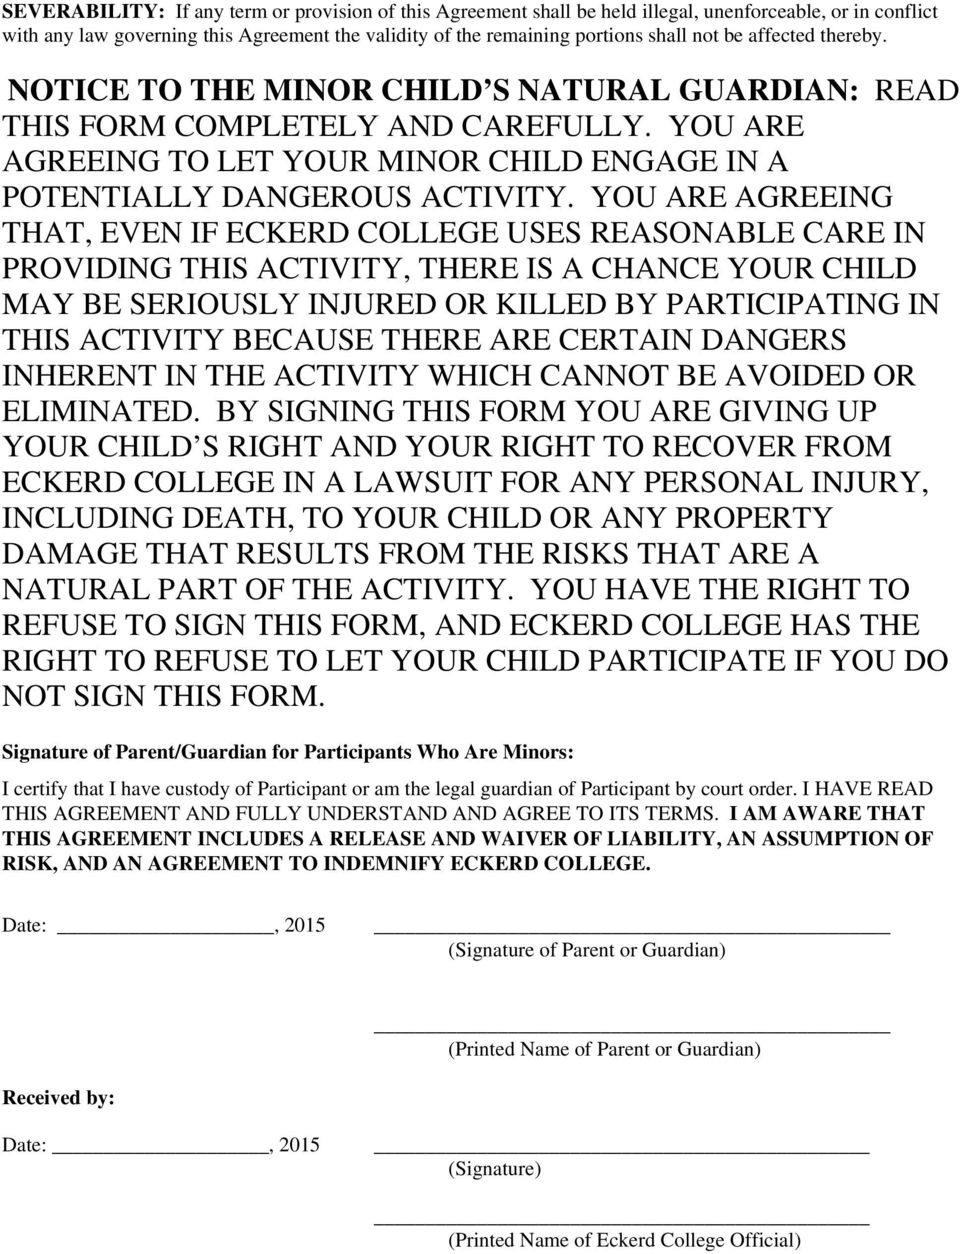 Participant Agreement Release And Waiver Of Liability Assumption Of